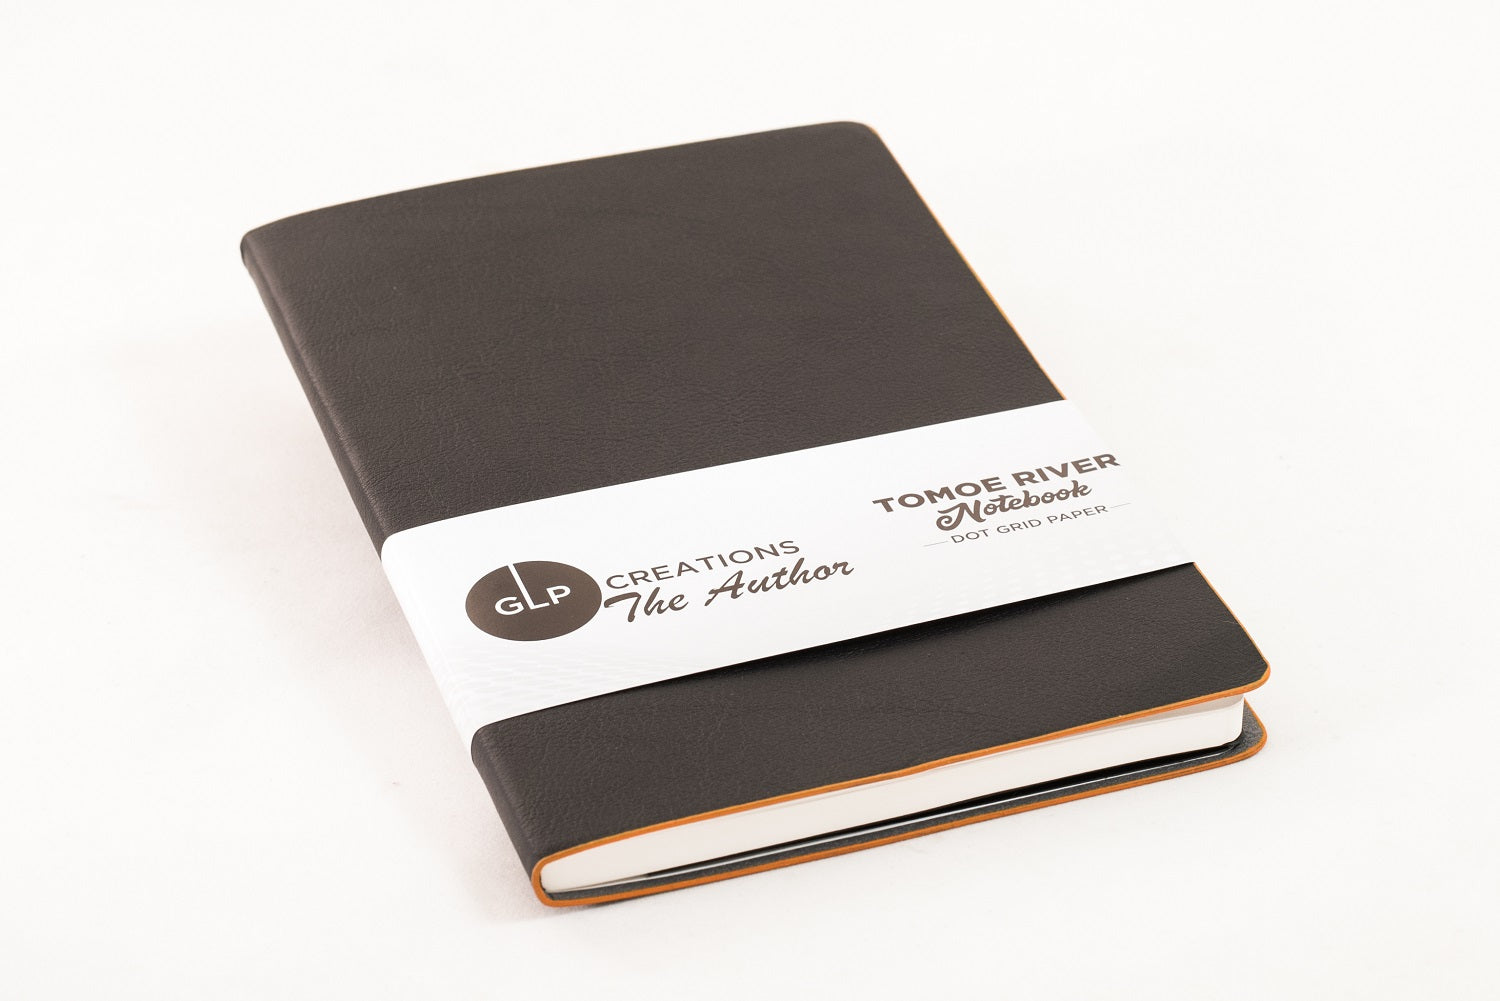 Anthracite//Dot Grid Tomoe River notebook The Author